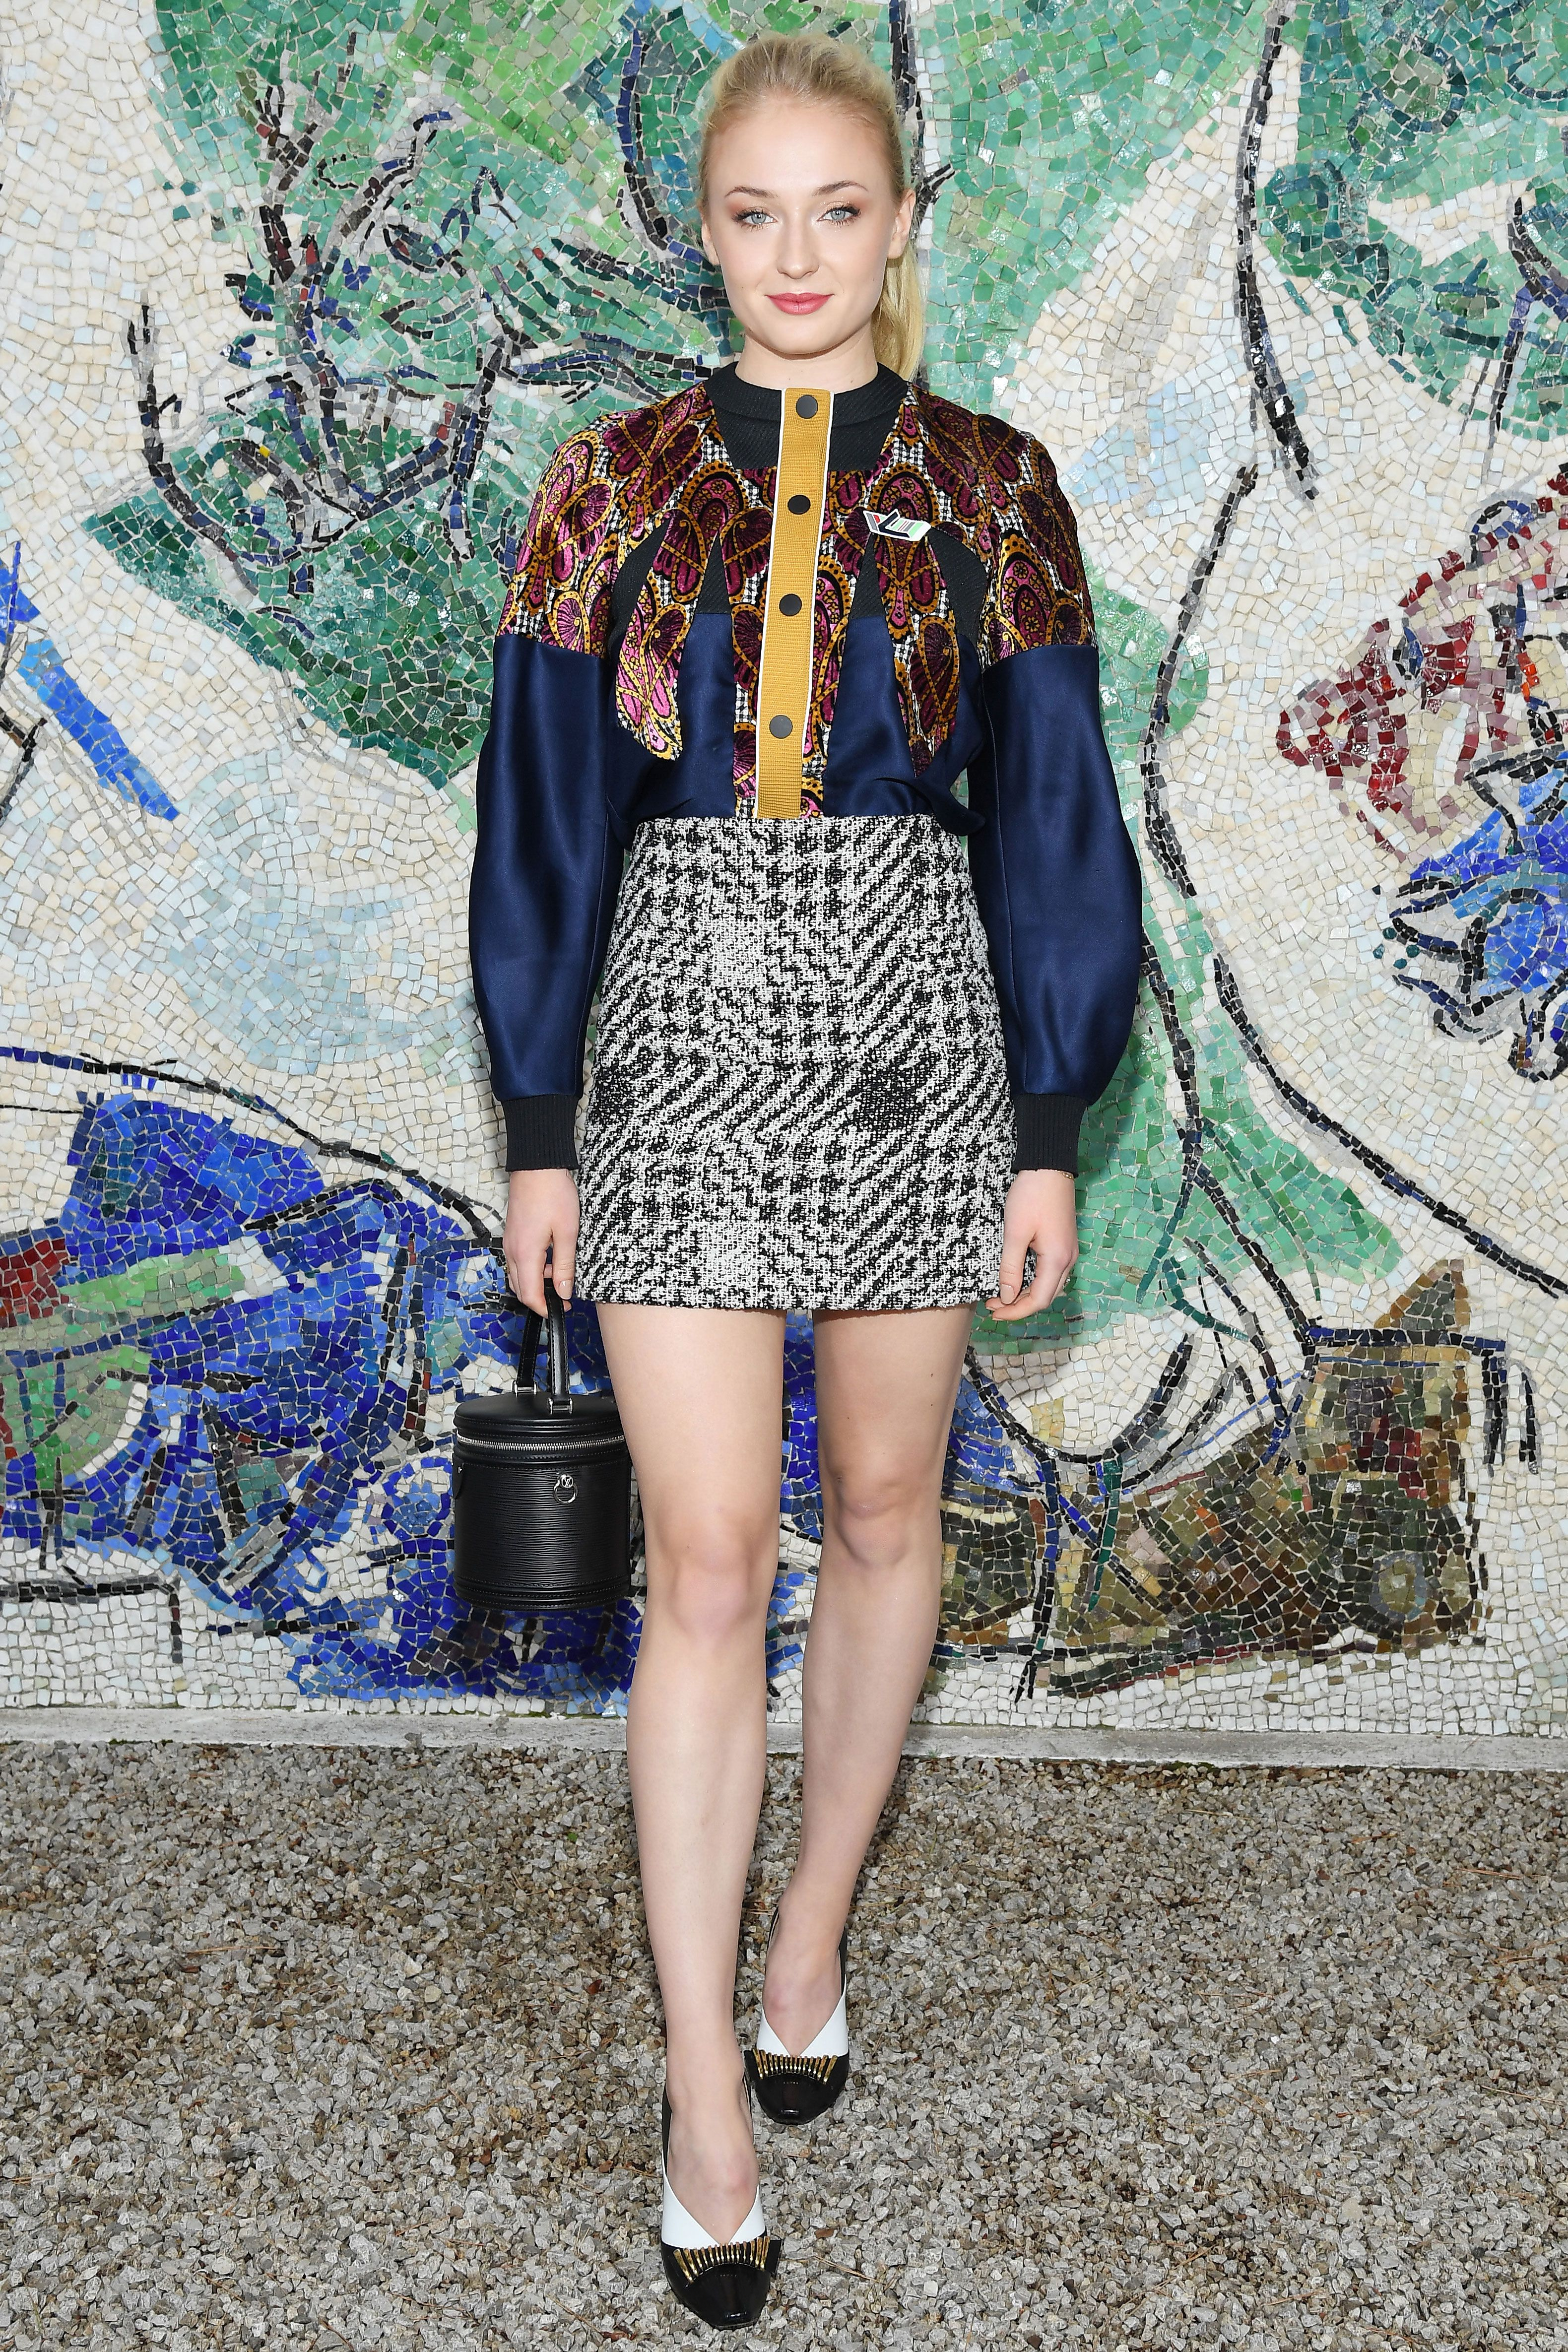 d9a785dae Sophie Turner Style - Sophie Turner's Best Outfits